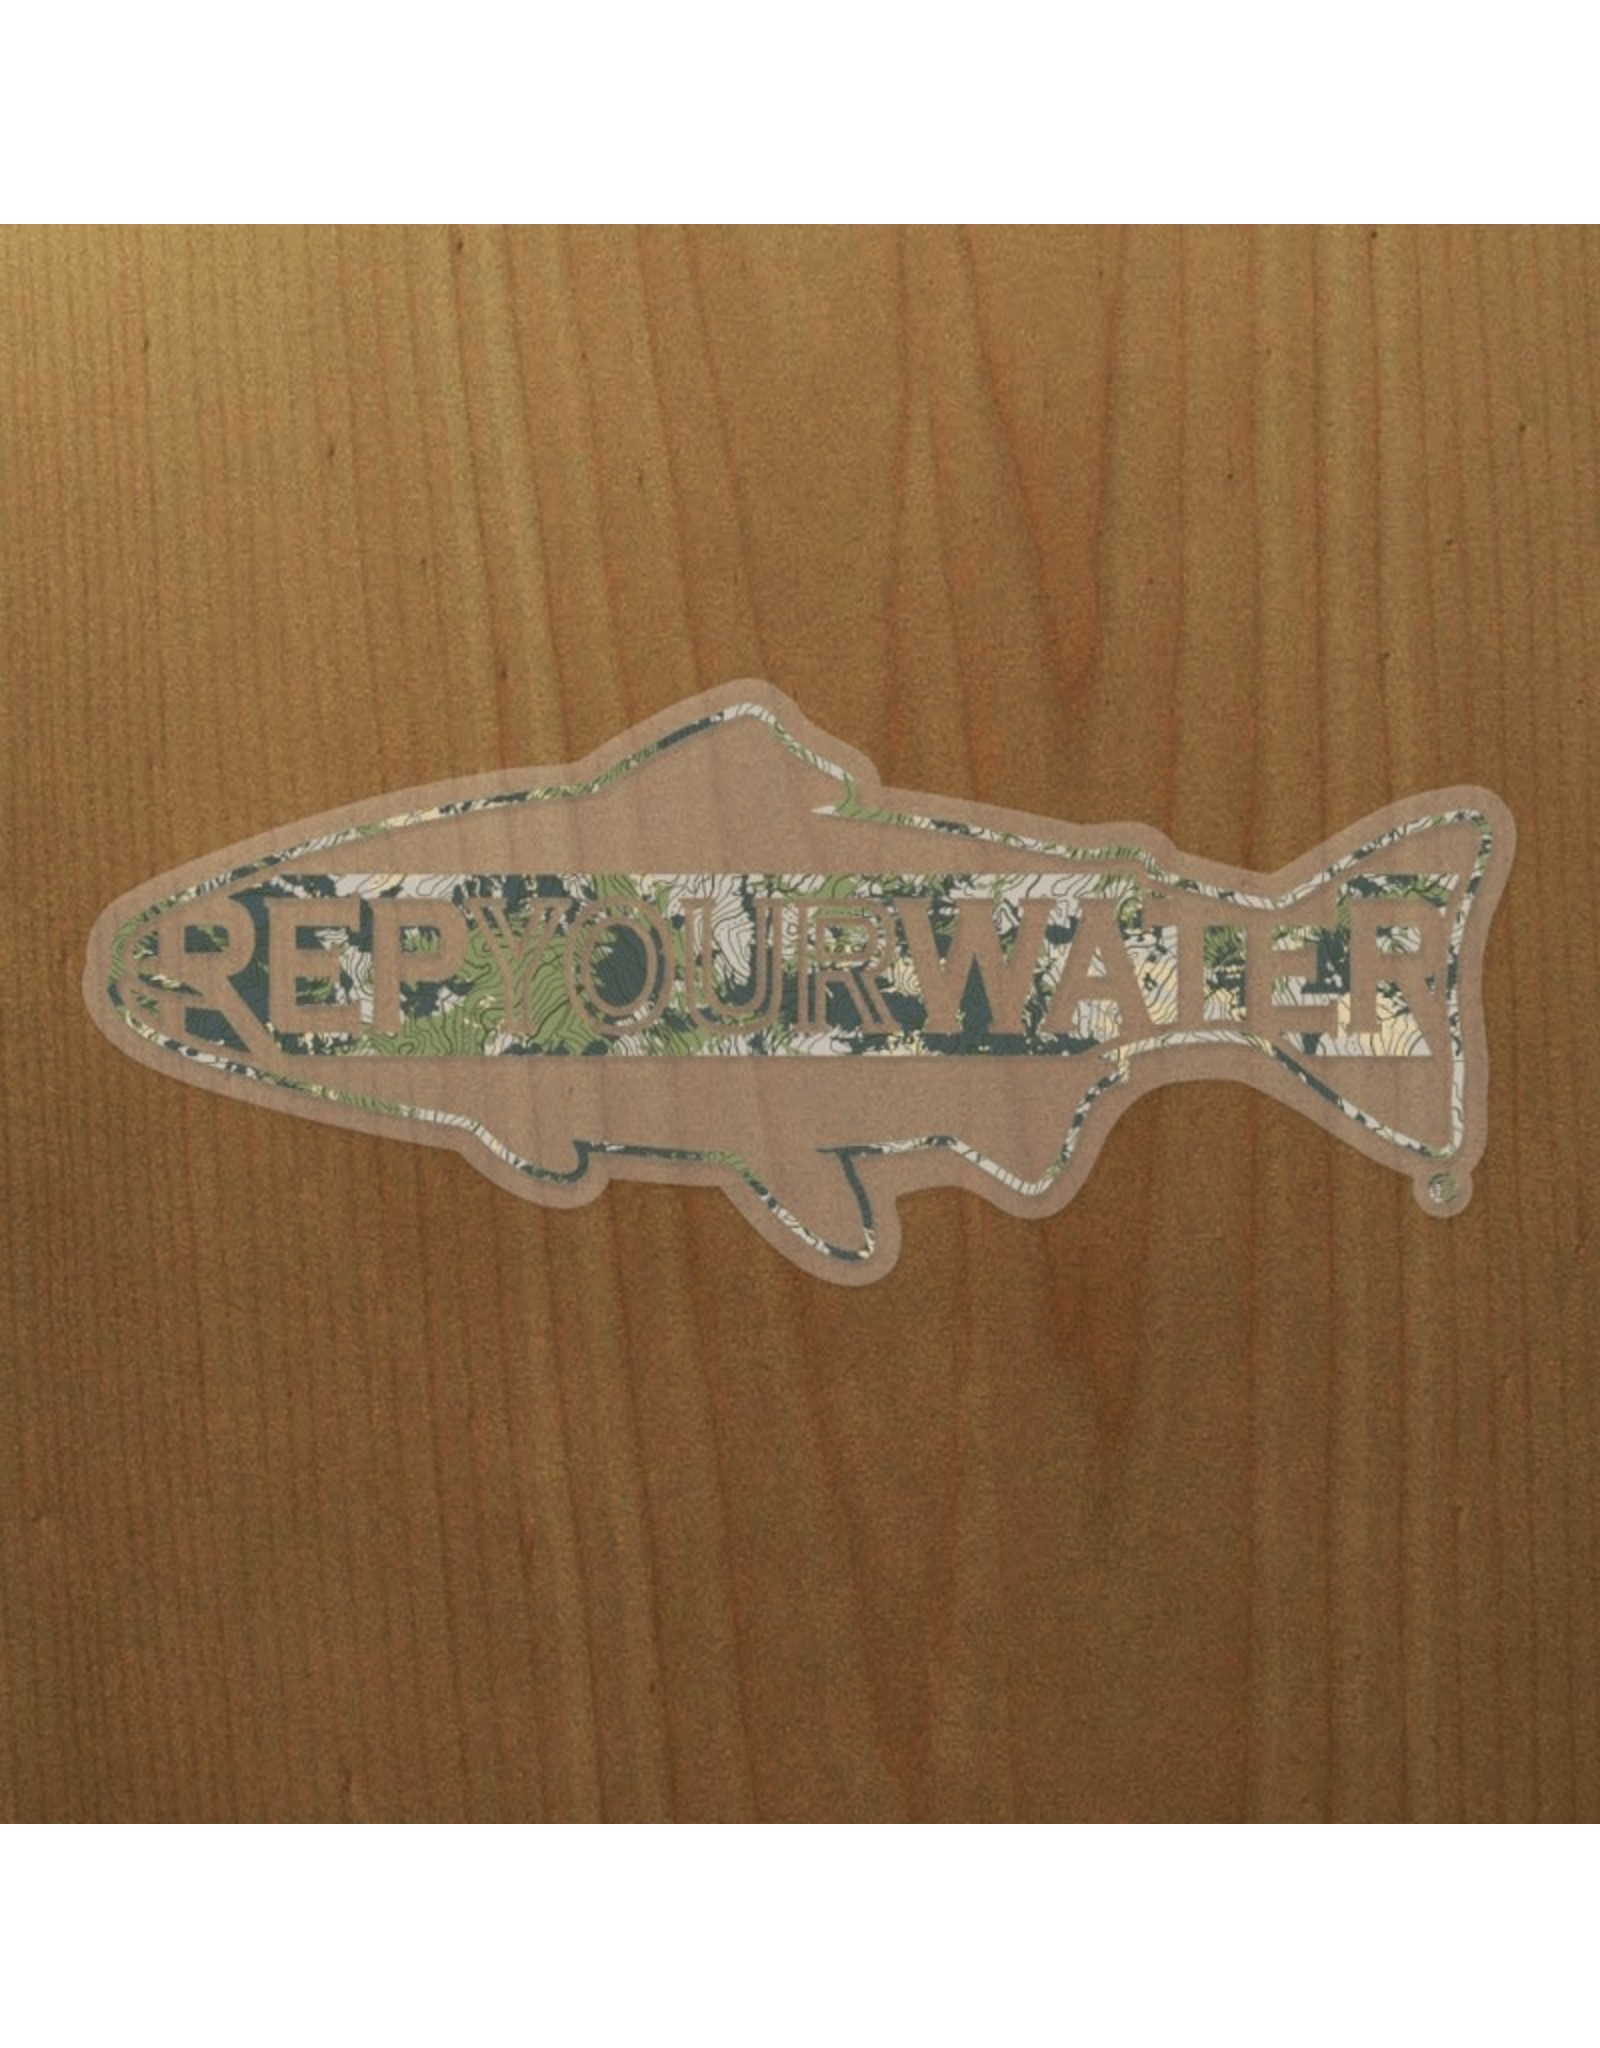 Rep Your Water RepYourWater Topo Camo XL Sticker